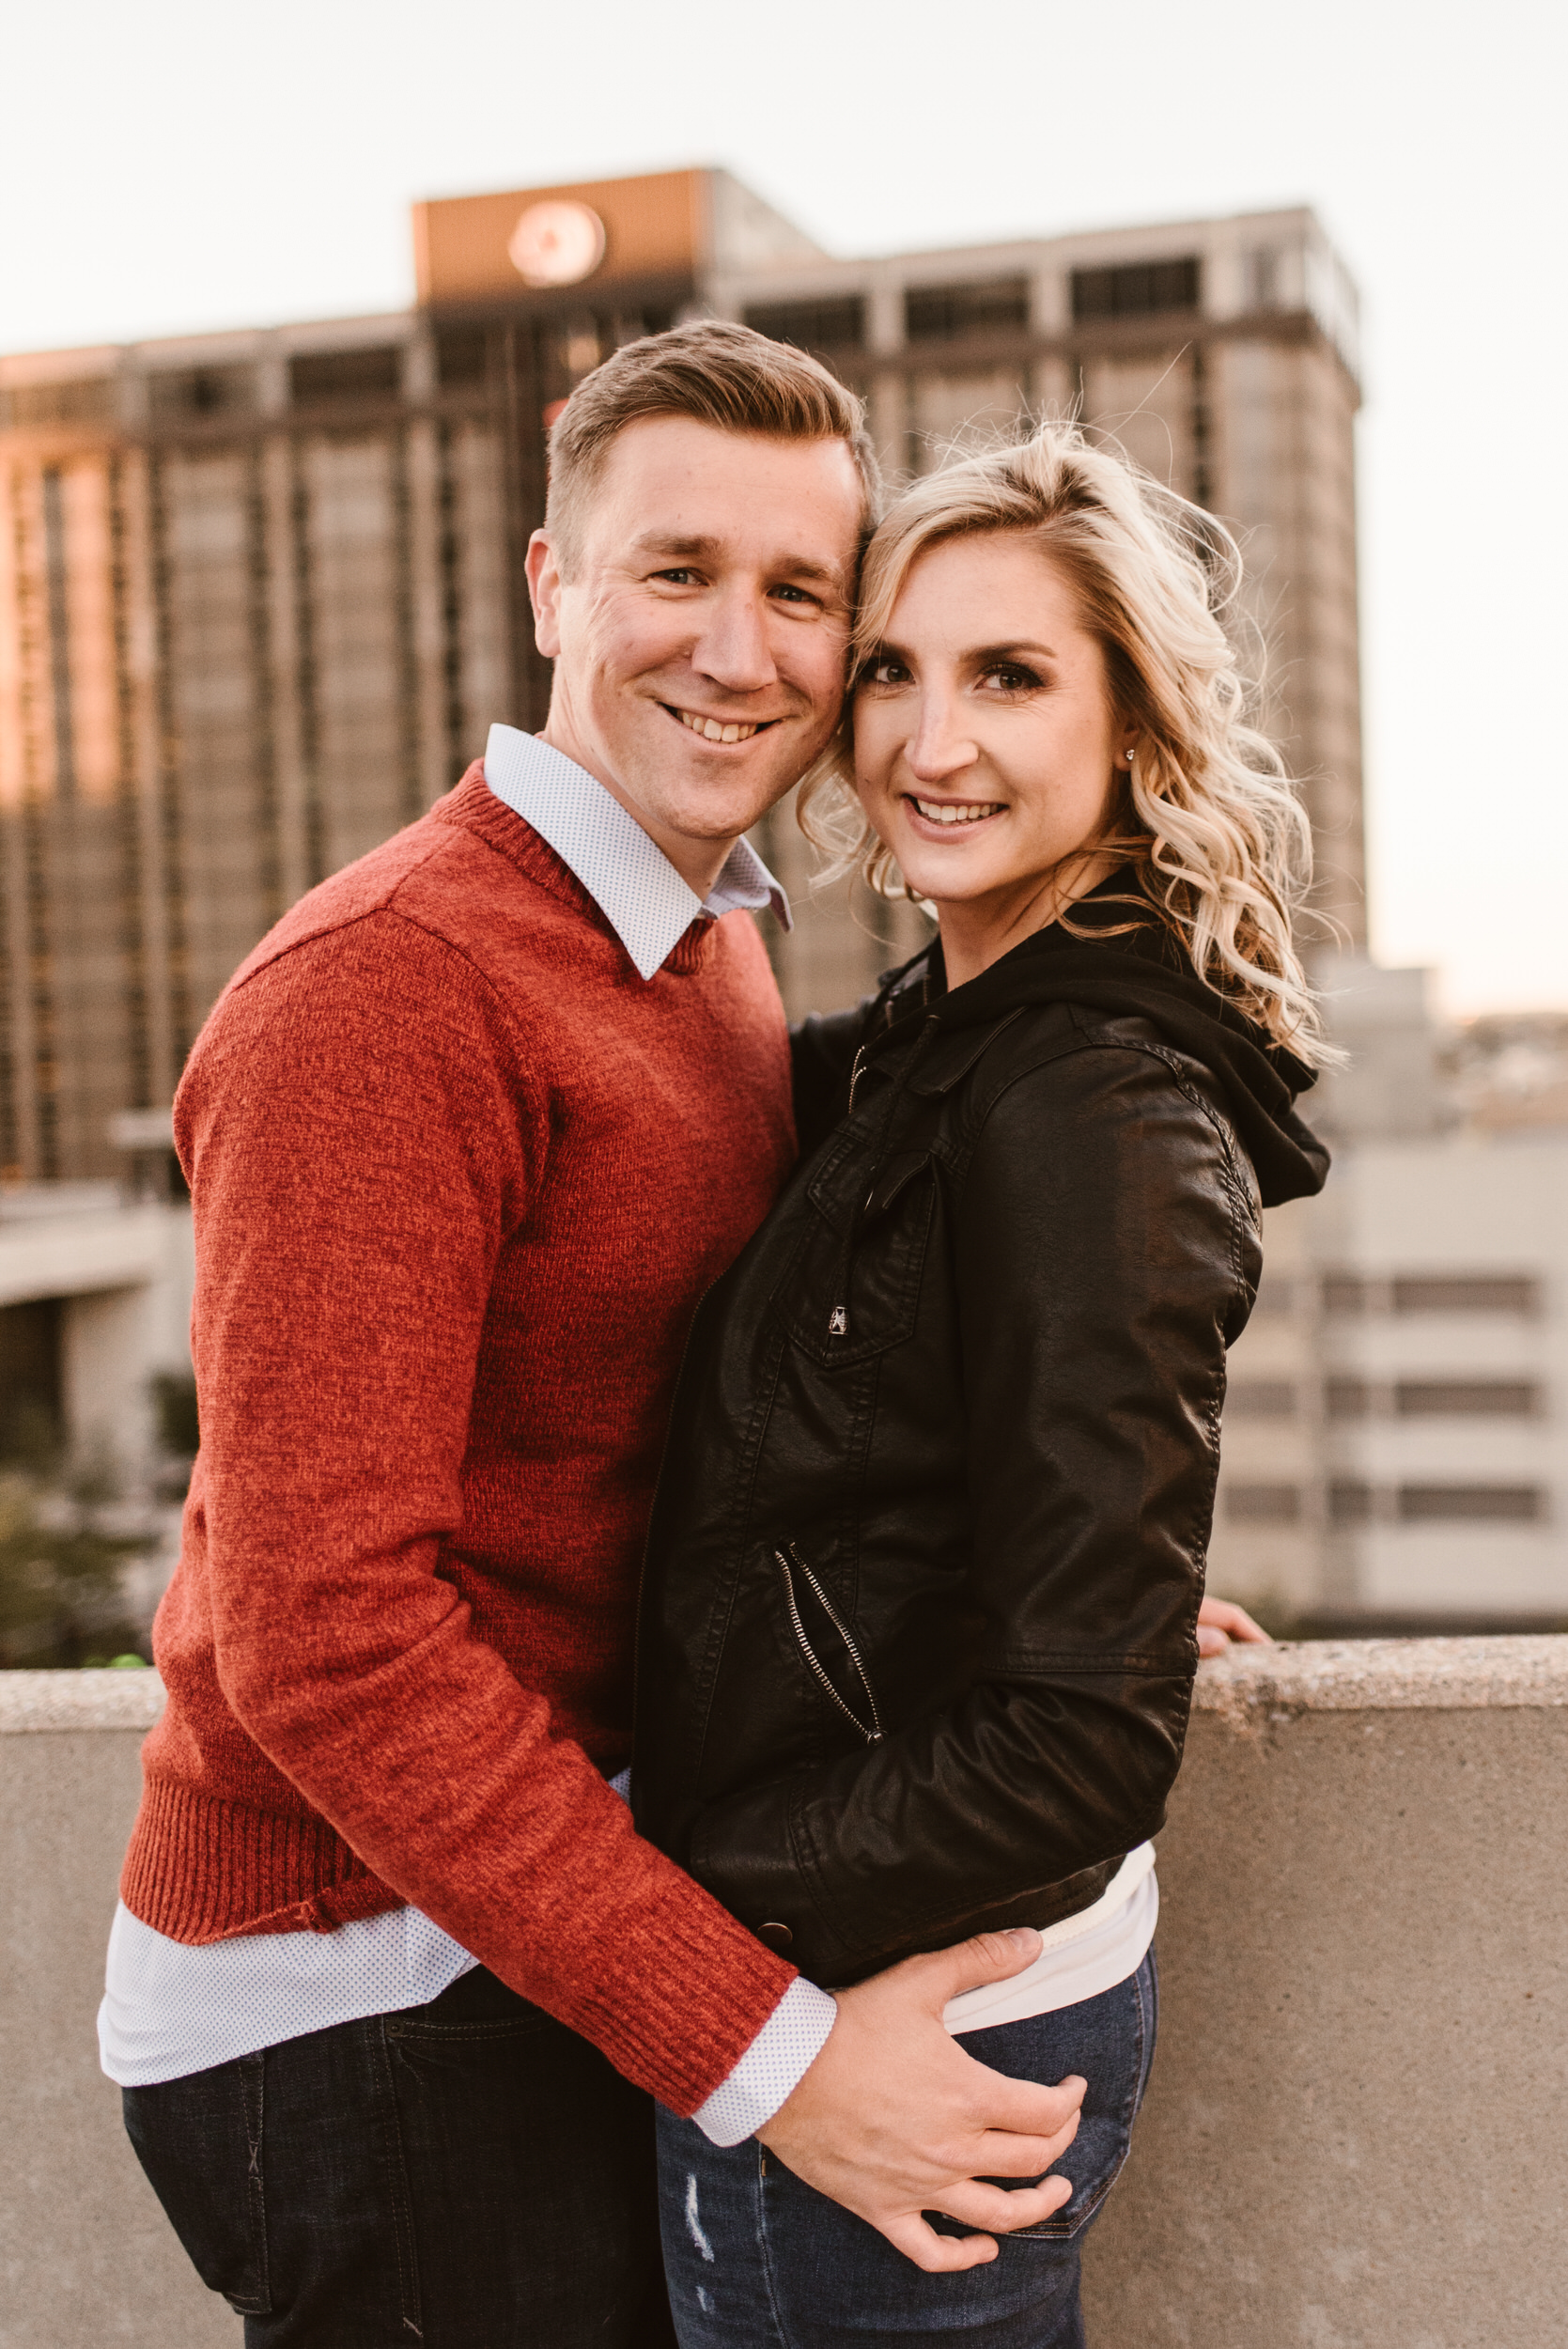 Gene Leahy Mall Omaha Engagement Session Kaylie Sirek Photography 26.jpg